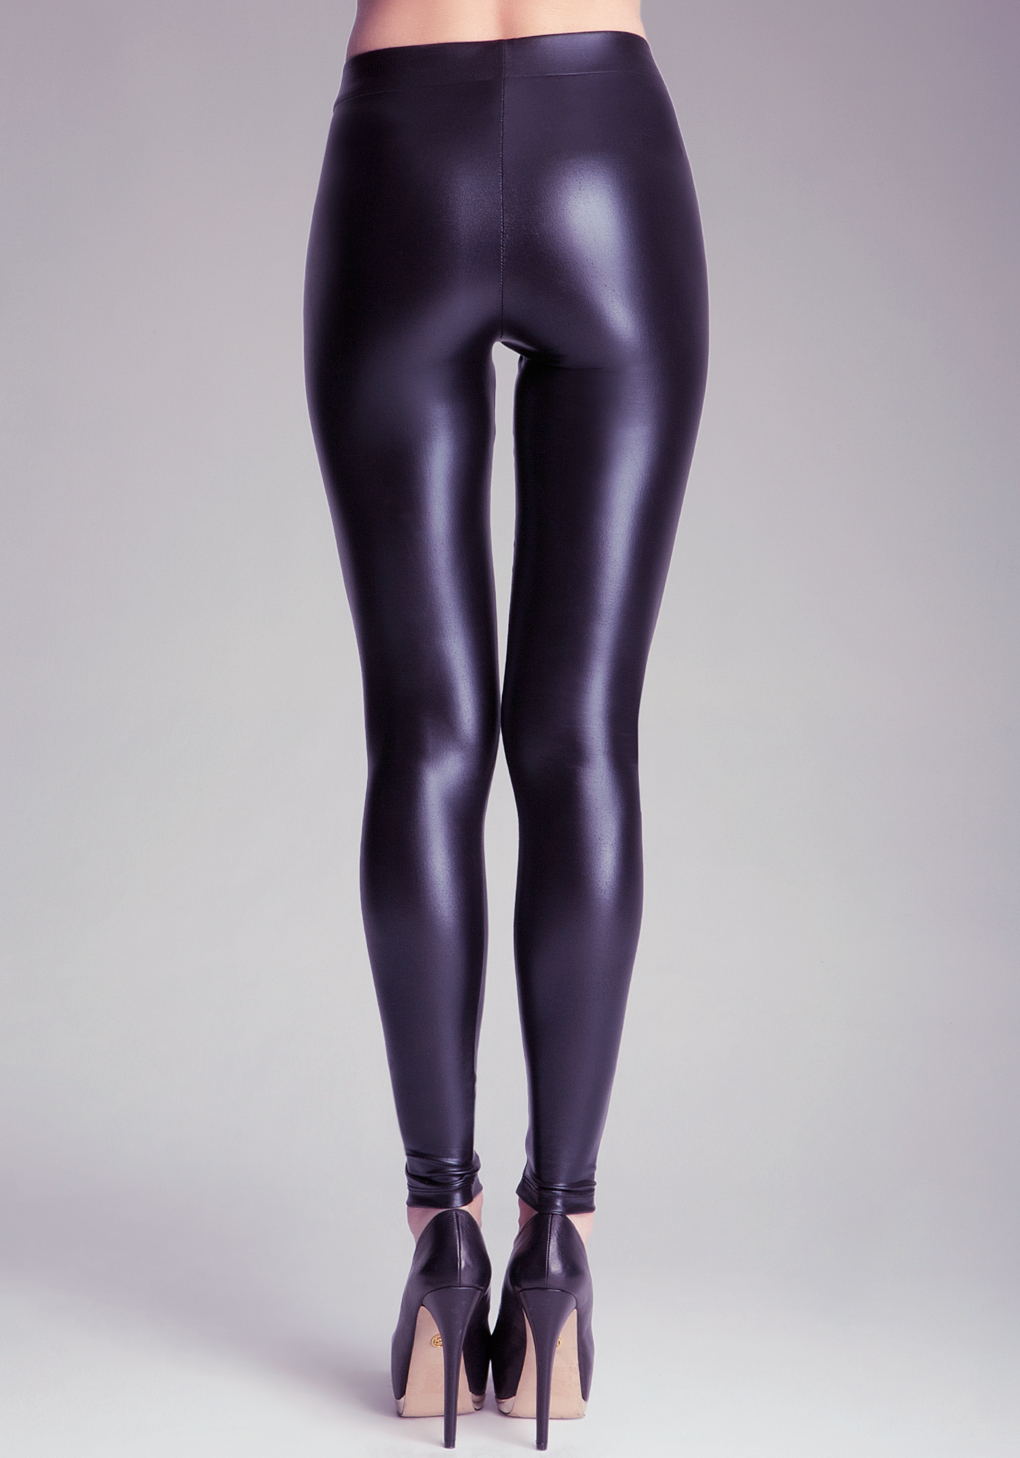 These ultra comfortable, slimming leggings have just the perfect amount of sheen to make everyone around you wet with desire and envy. They are a medium weight nylon-elastane with 4 way stretch and enough compression to smooth any trouble spots.